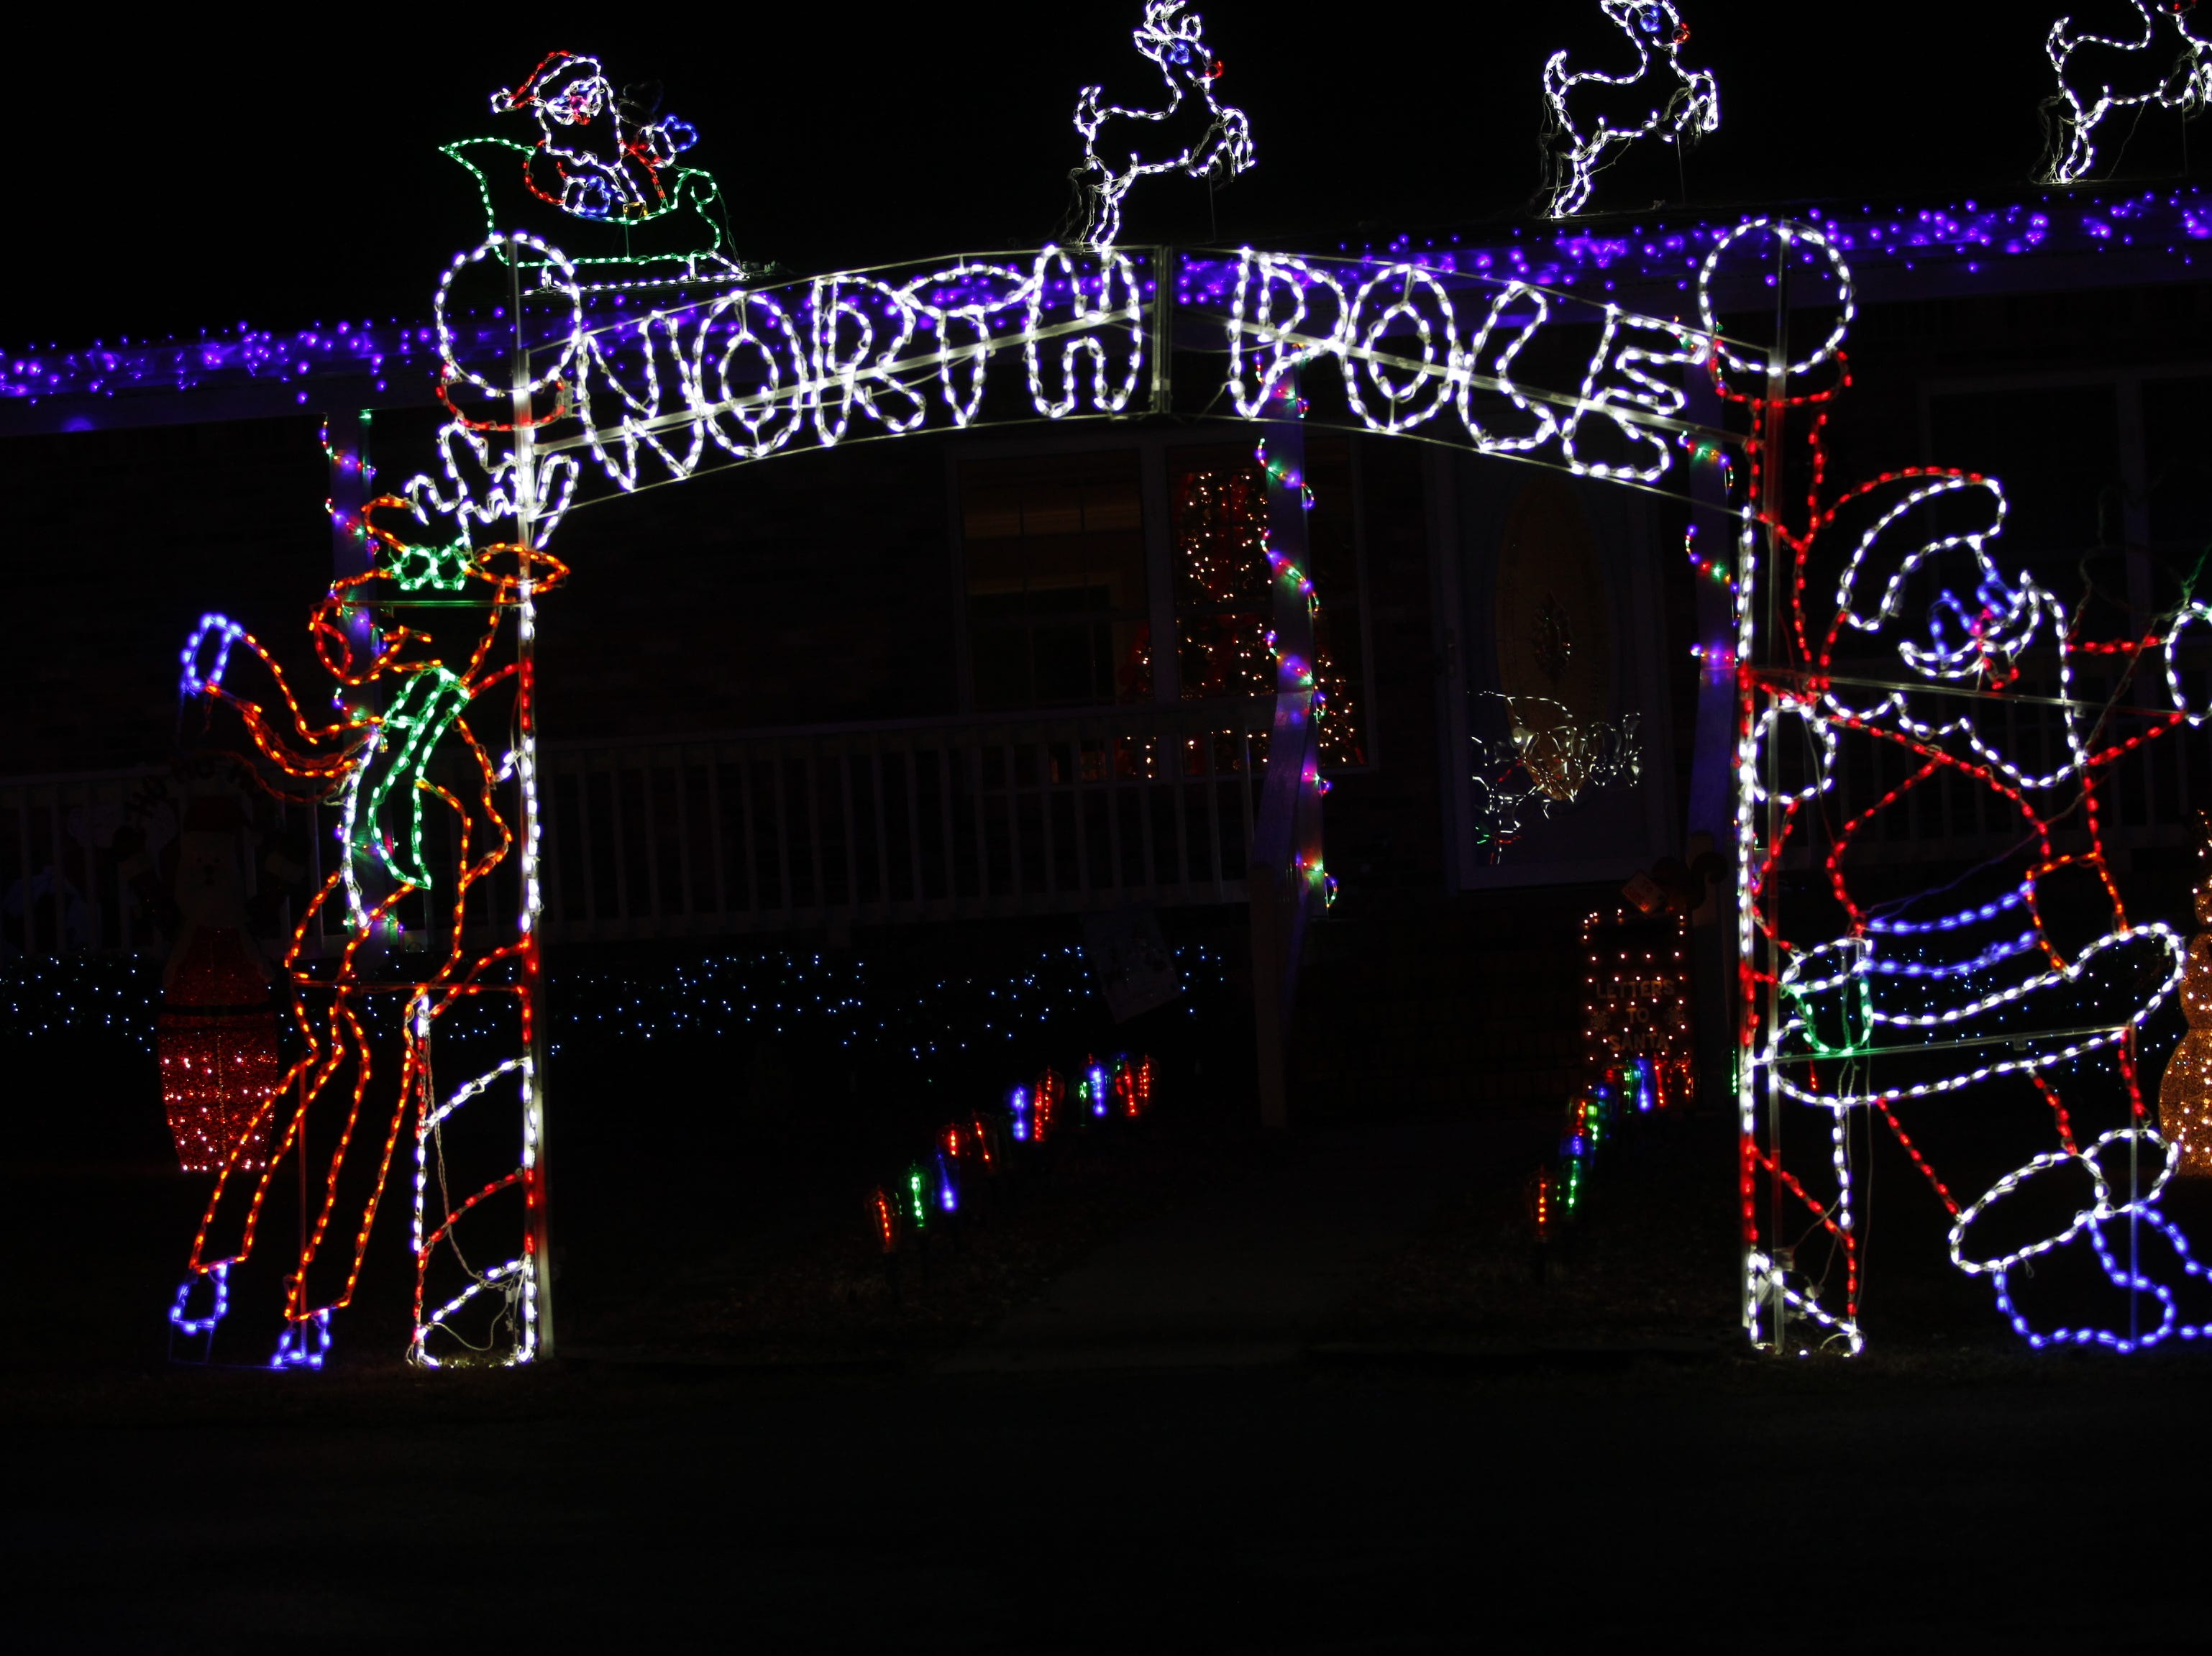 Mike and Kelly Baggett were the county third place winners in the 2018 Christmas Lighting Contest.